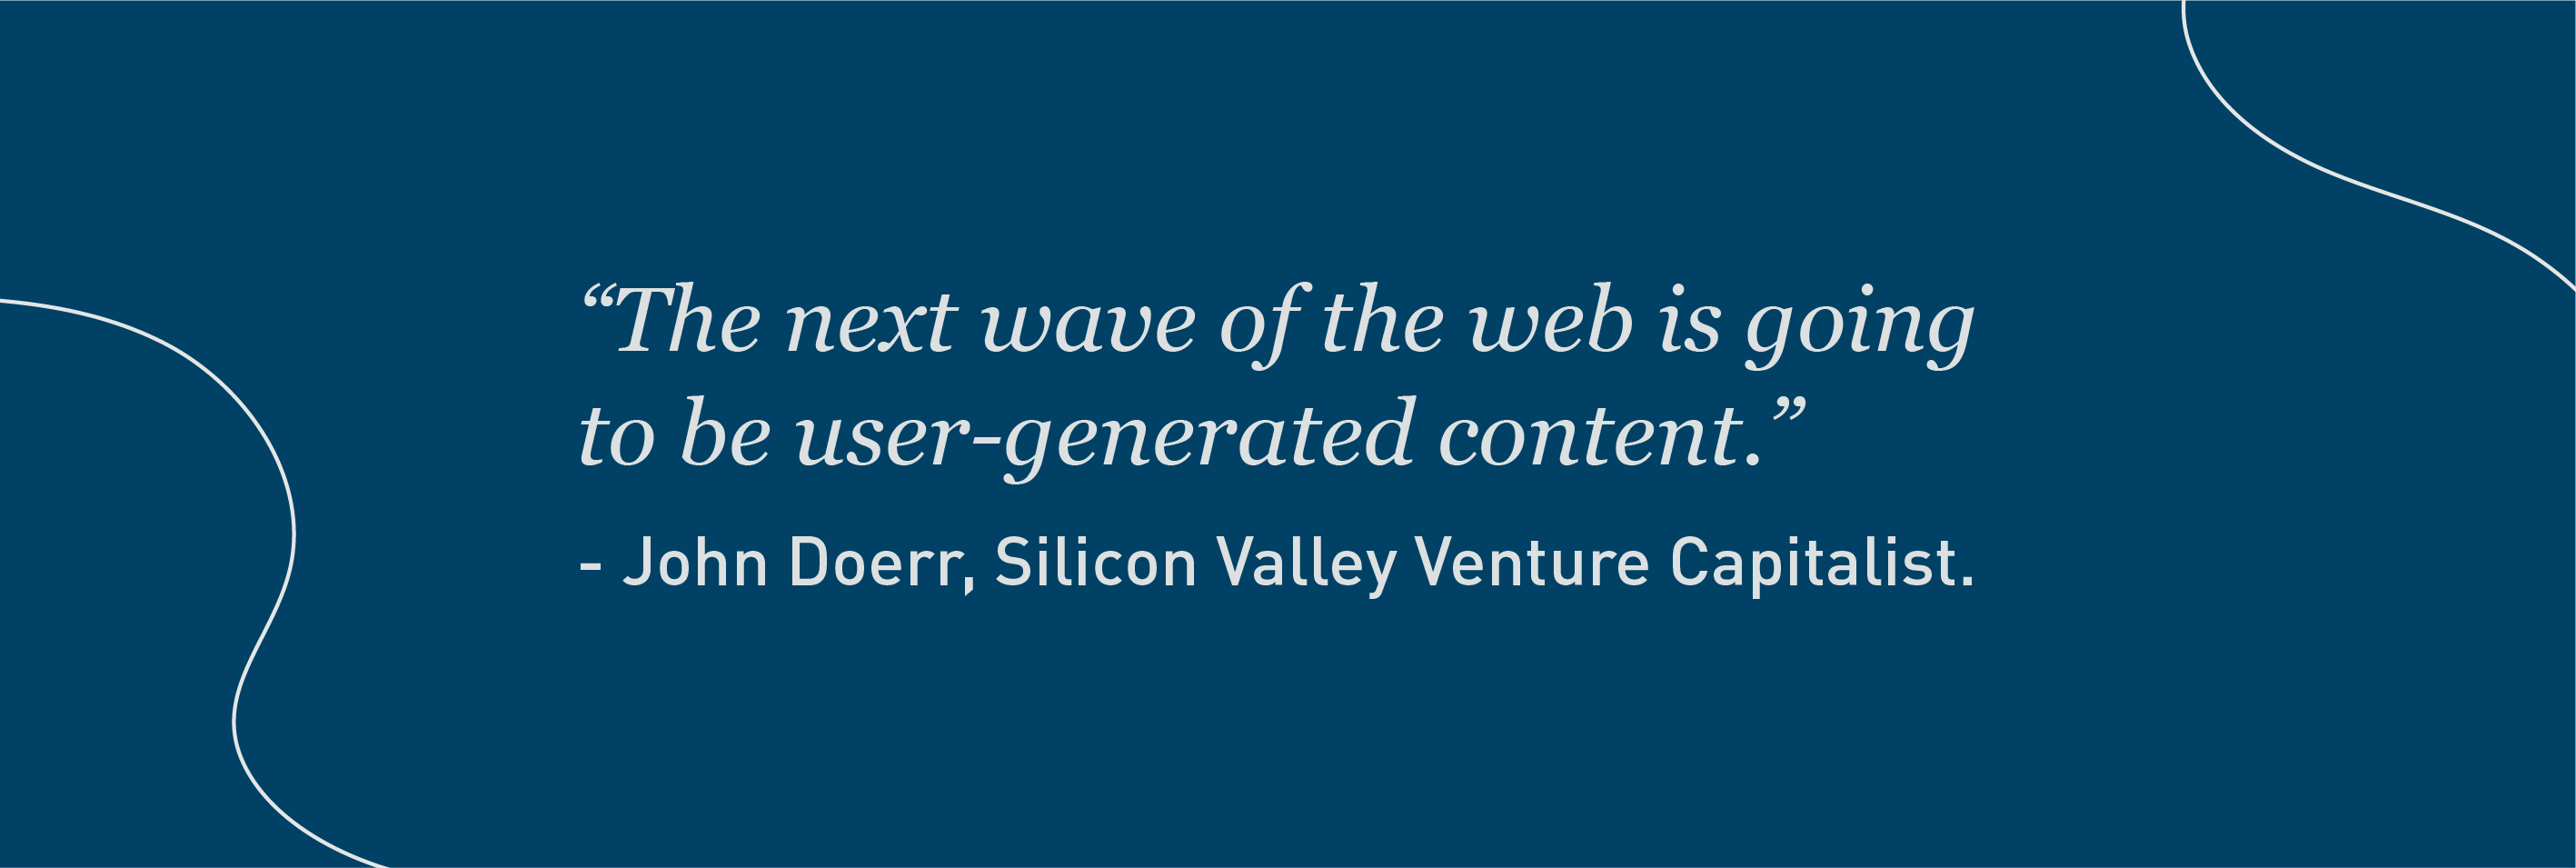 John Doerr Quote on user generated content